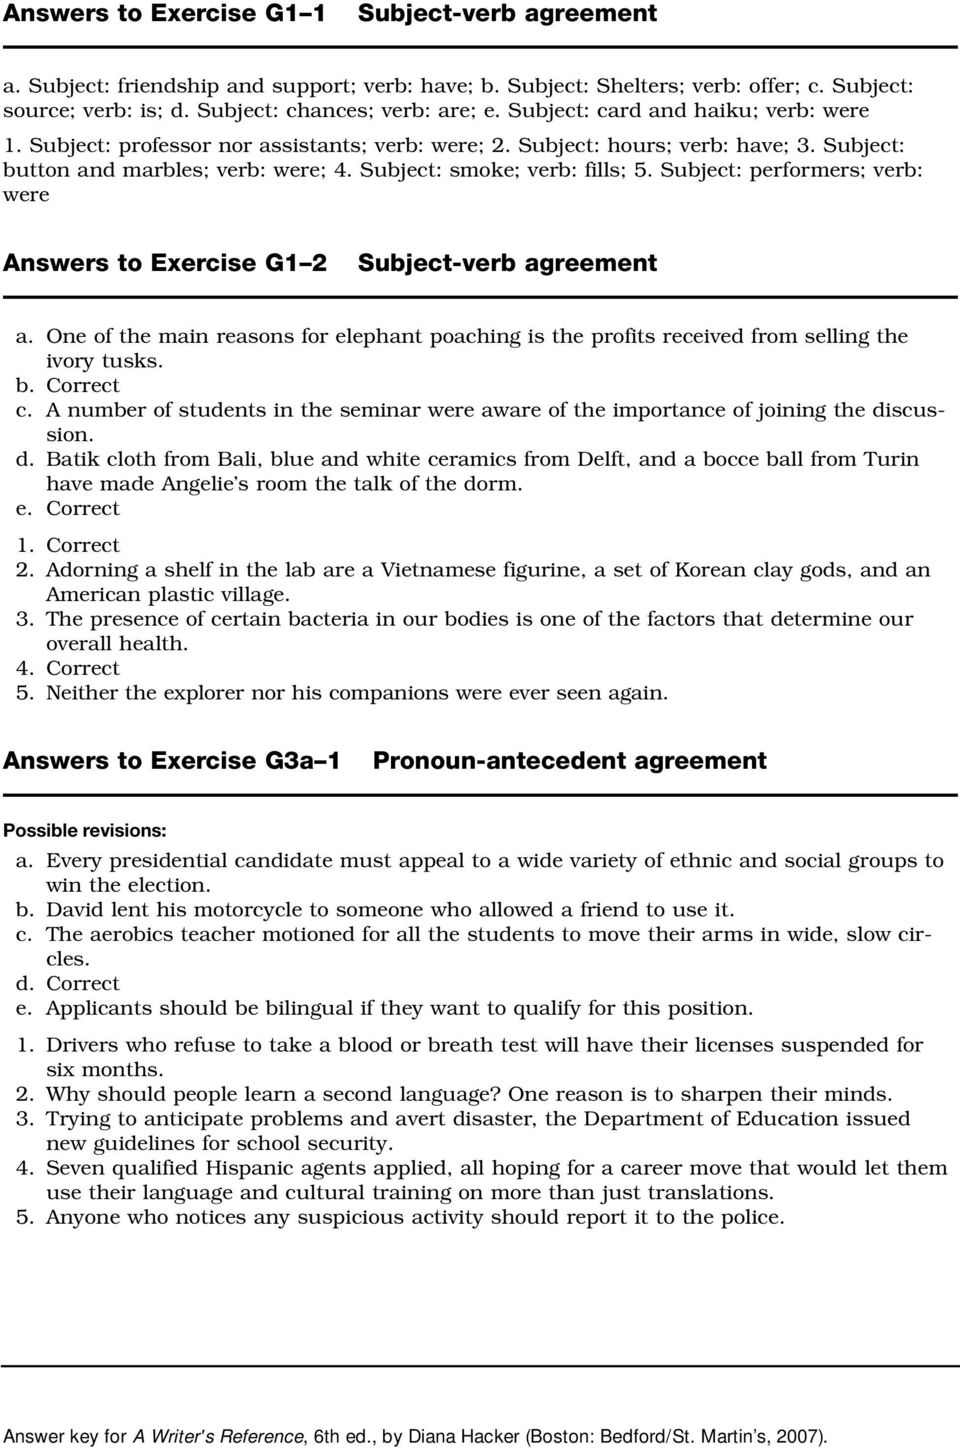 medium resolution of Exercise G1 1 Subject Verb Agreement Answers - Exercise Poster